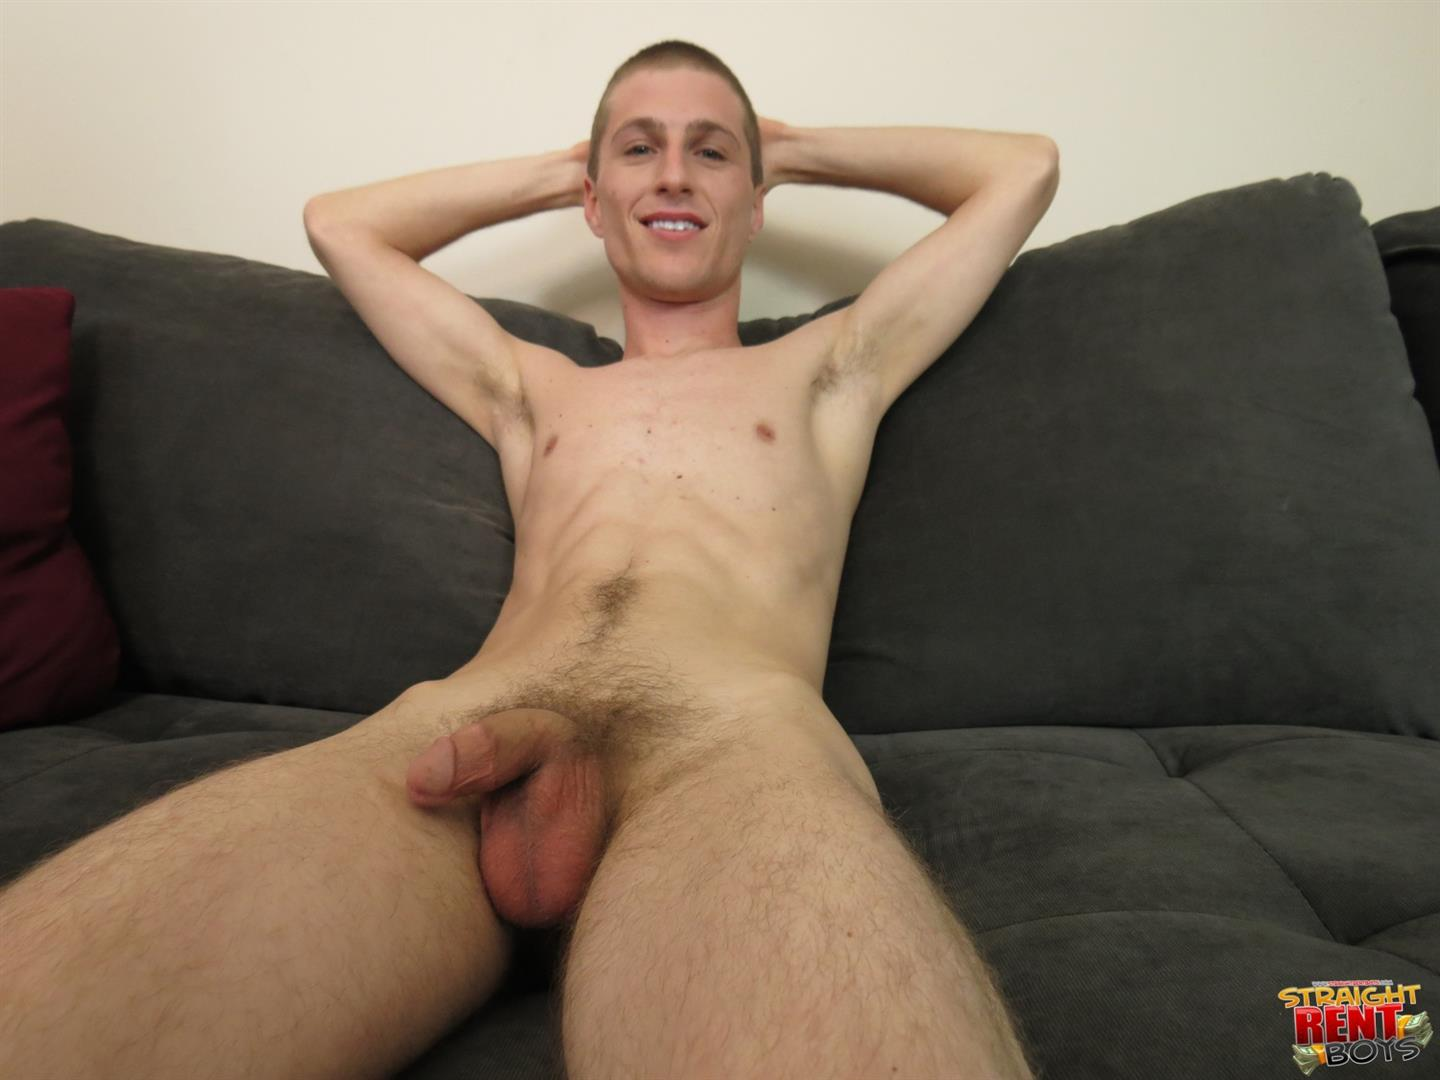 Staight-Rent-Boys-Jacob-Griffin-Skinny-Straight-Twink-With-A-Big-Cock-Amateur-Gay-Porn-08 Amateur Straight Skinny Twink Jerking Off His Big Cock